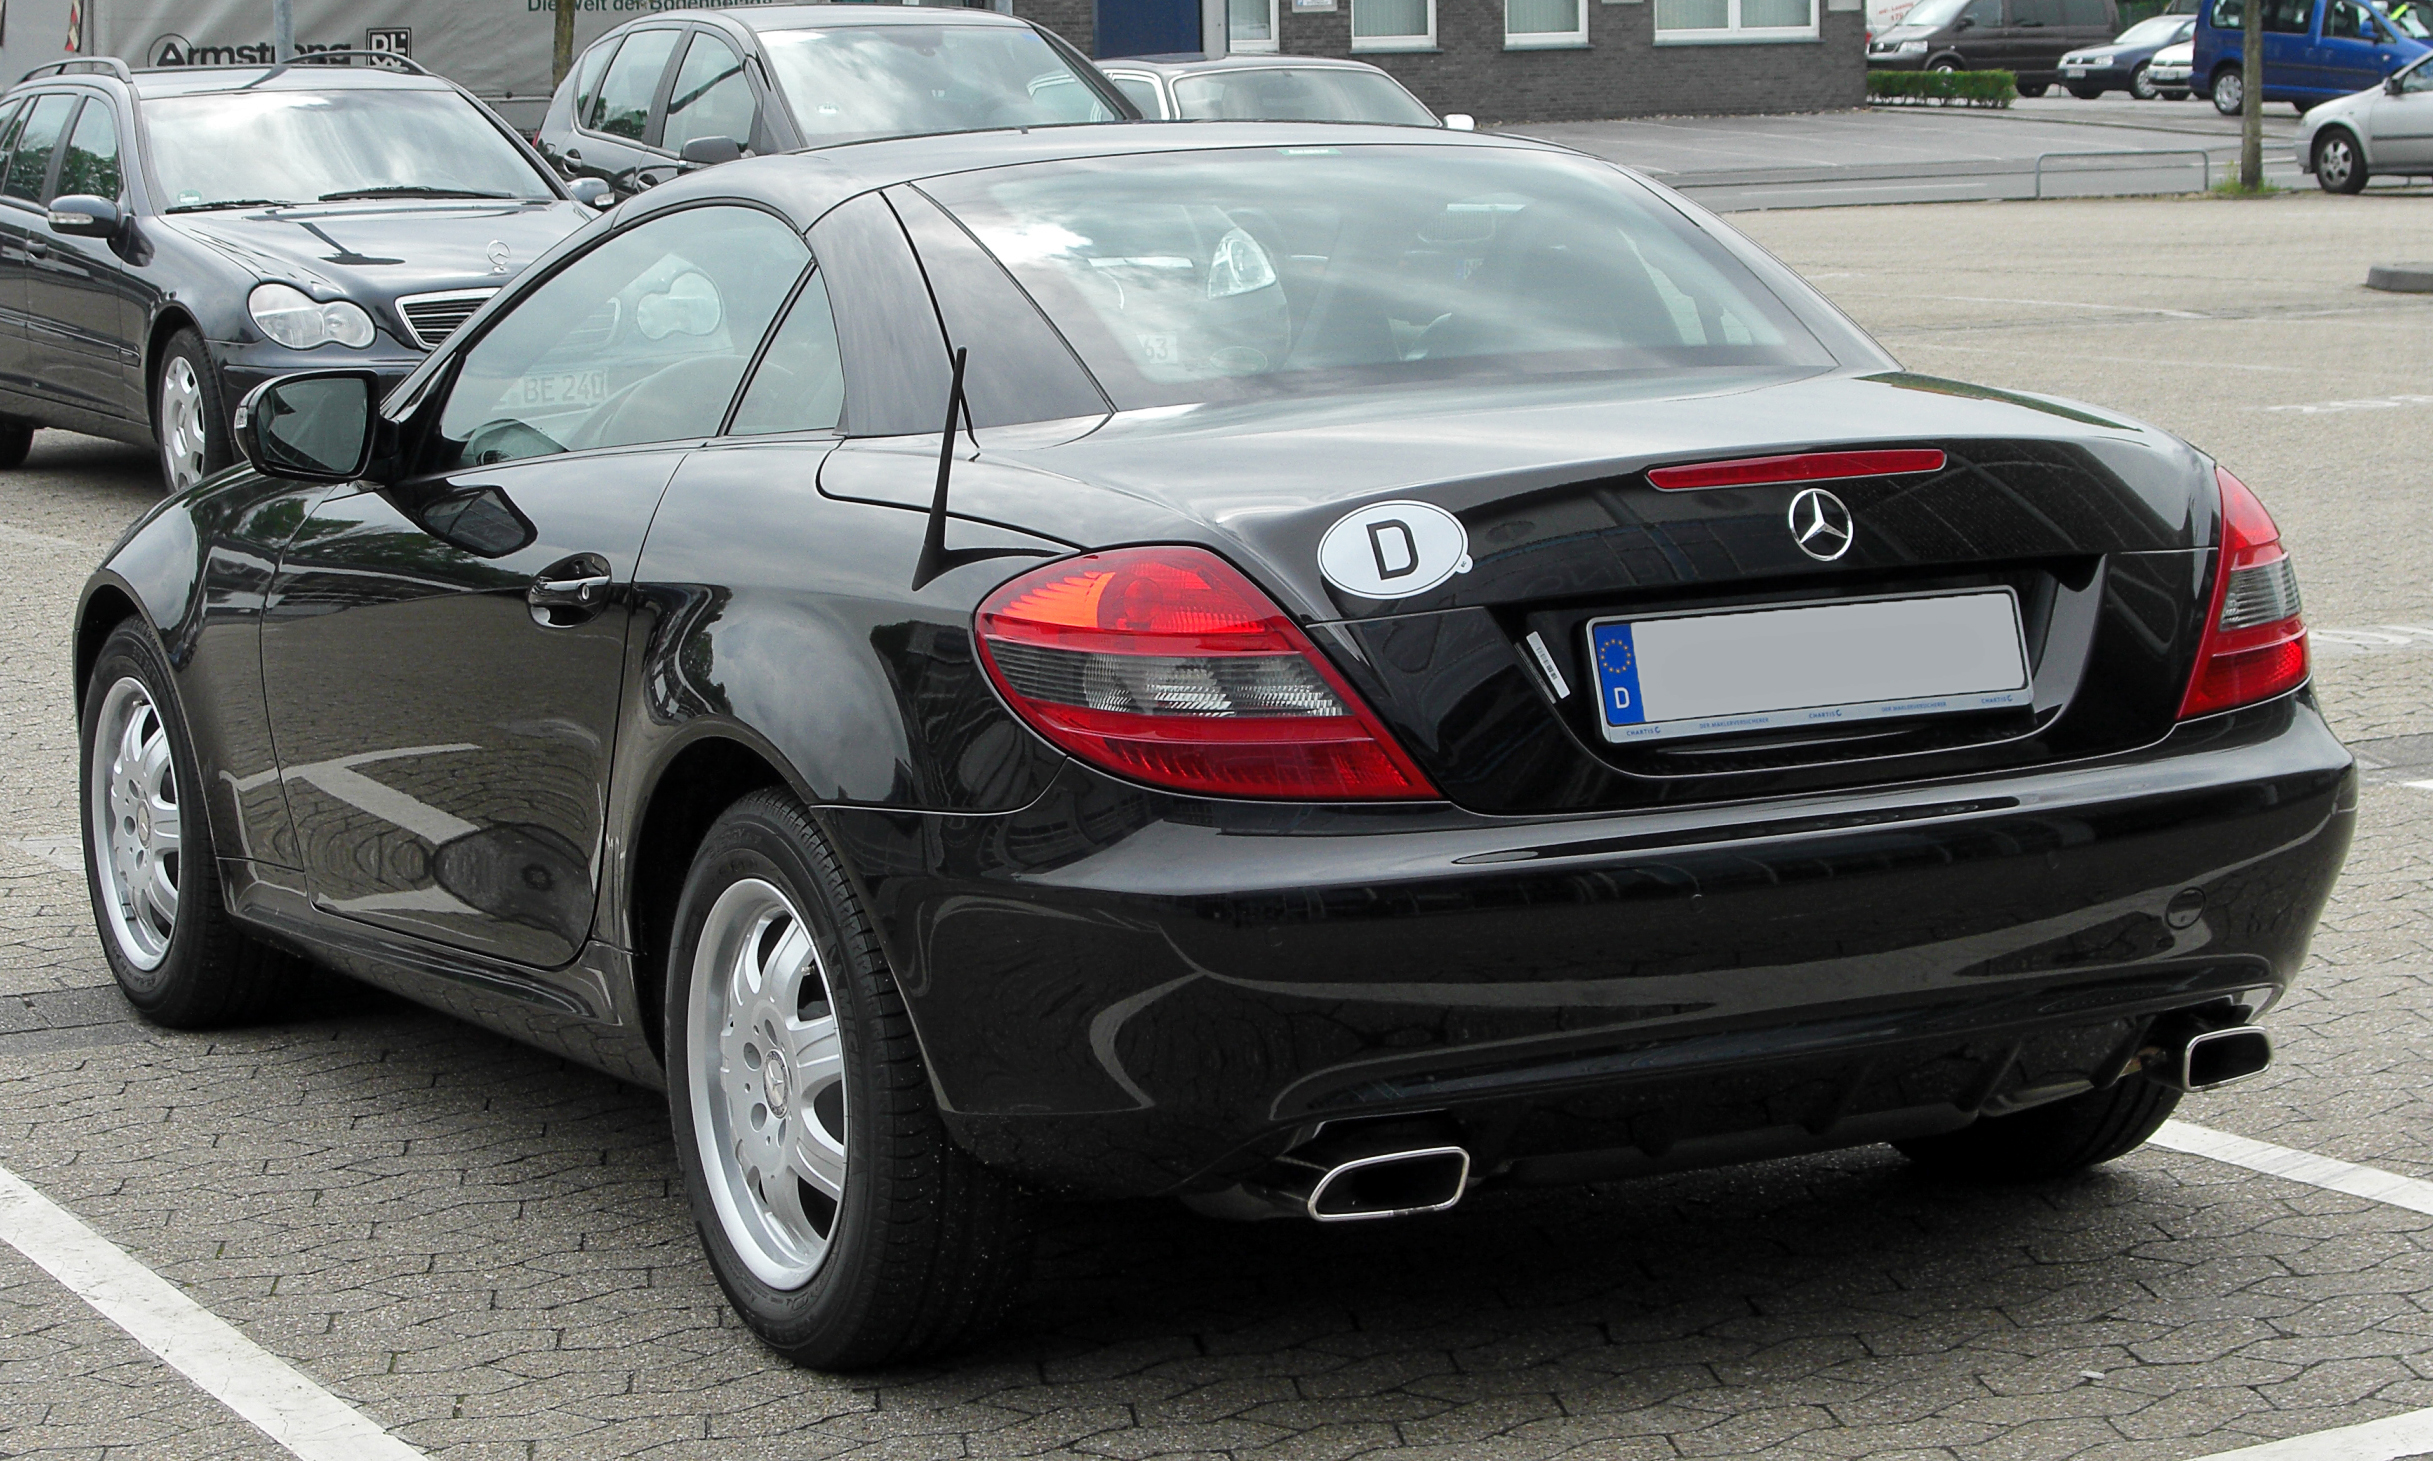 file mercedes slk r171 facelift rear wikimedia commons. Black Bedroom Furniture Sets. Home Design Ideas